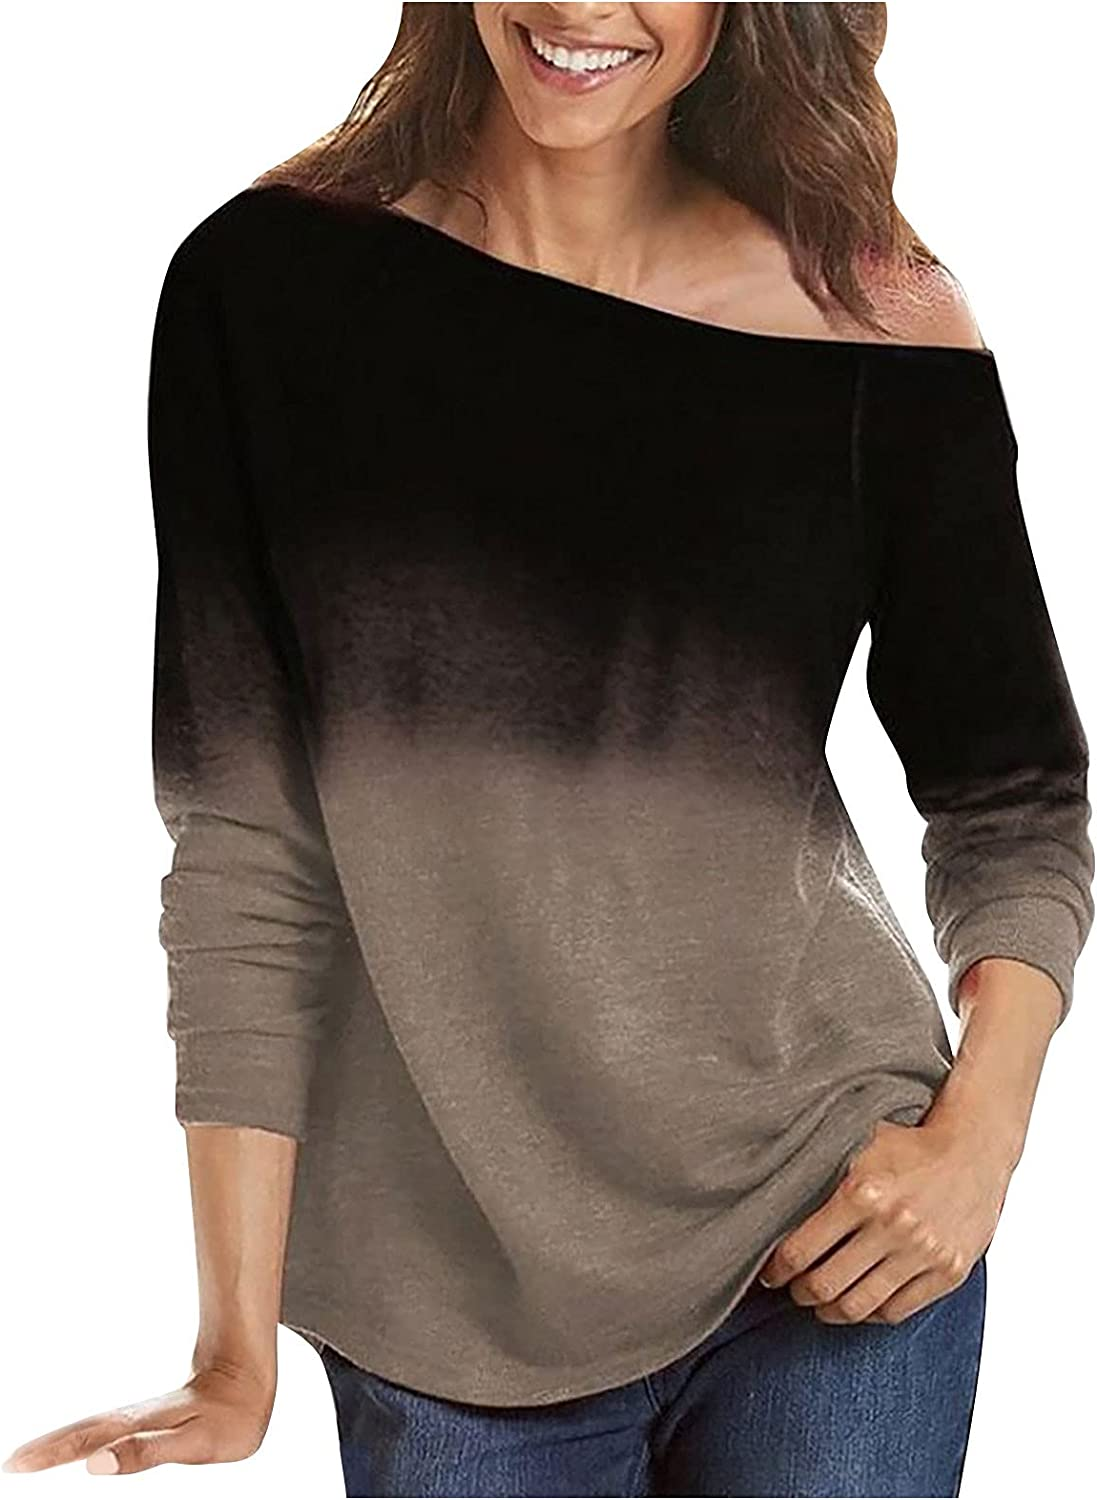 Women Long Sleeve Gradient Striped Printing Round Neck Loose Blouse Sweatshirt Casual Comfy Tops Shirts Pullover